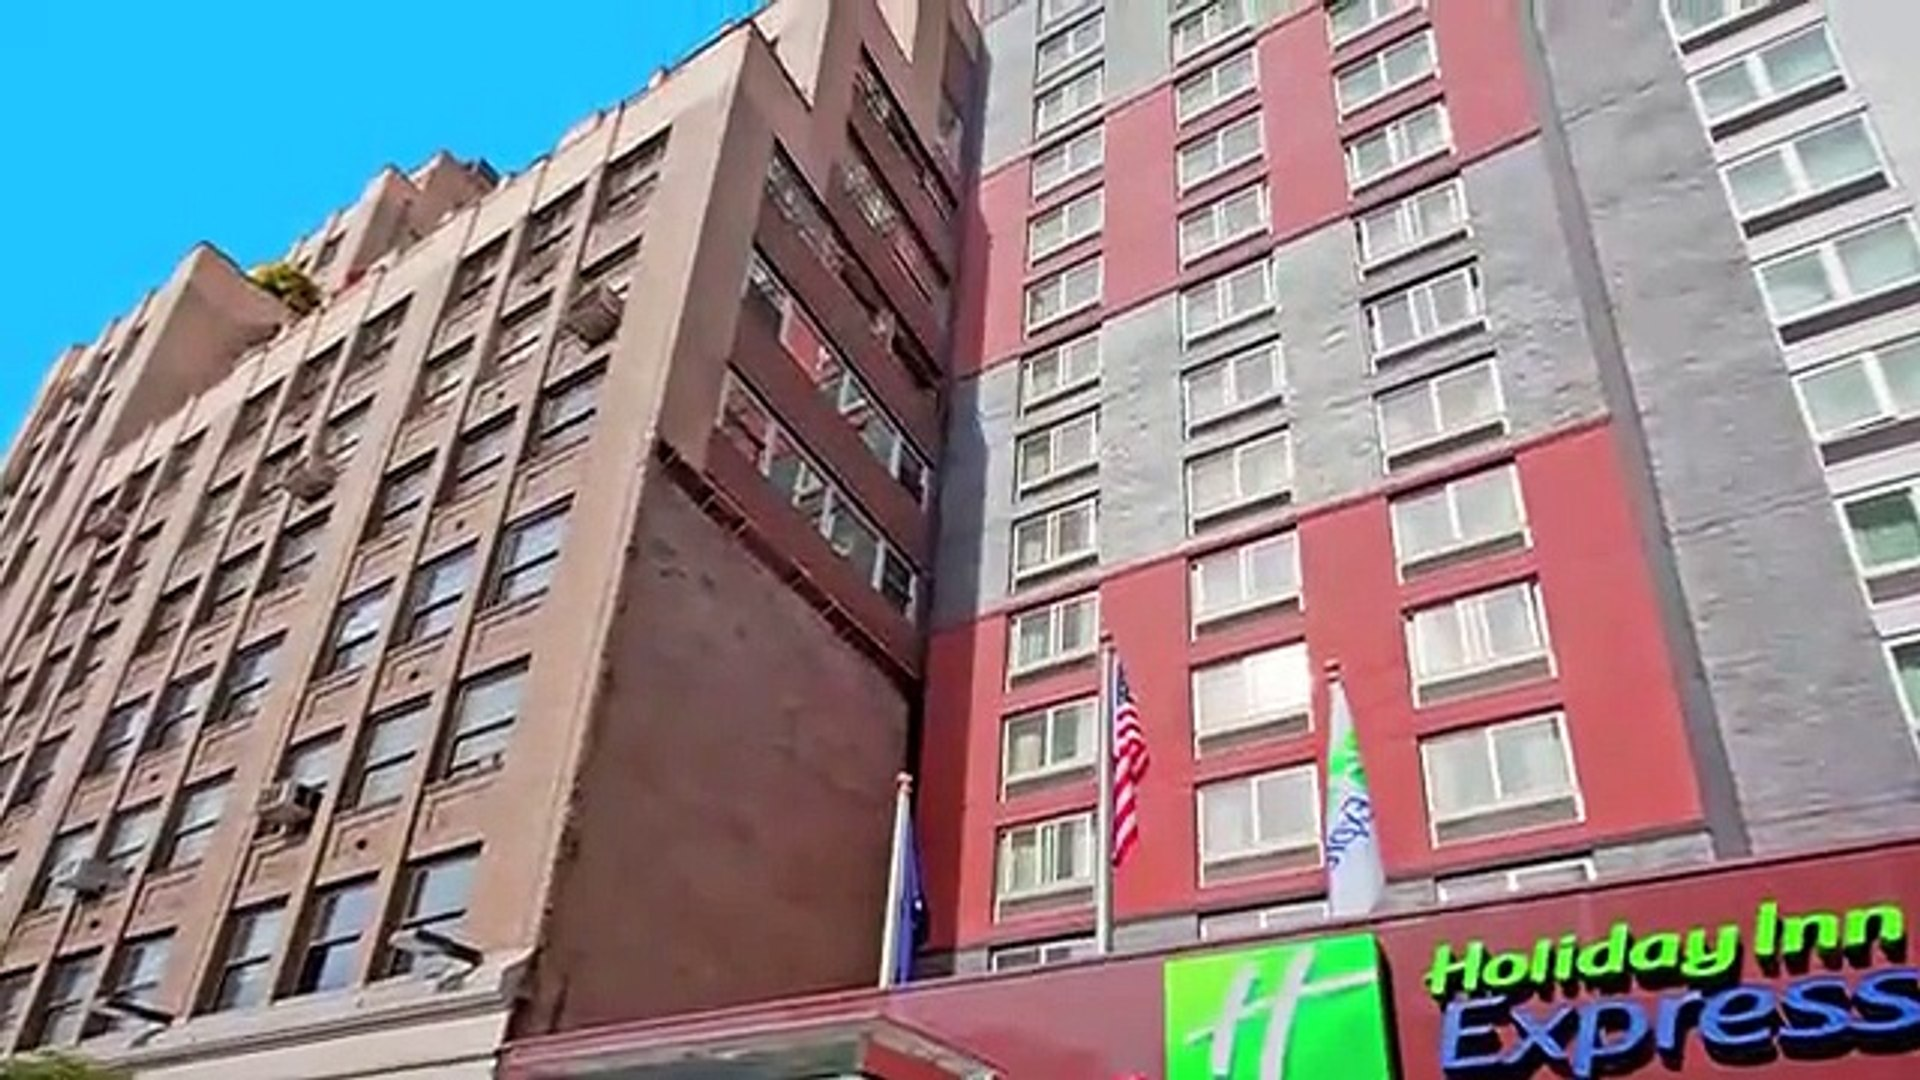 Holiday Inn Express Hotel New York City Times Square - New York, New York